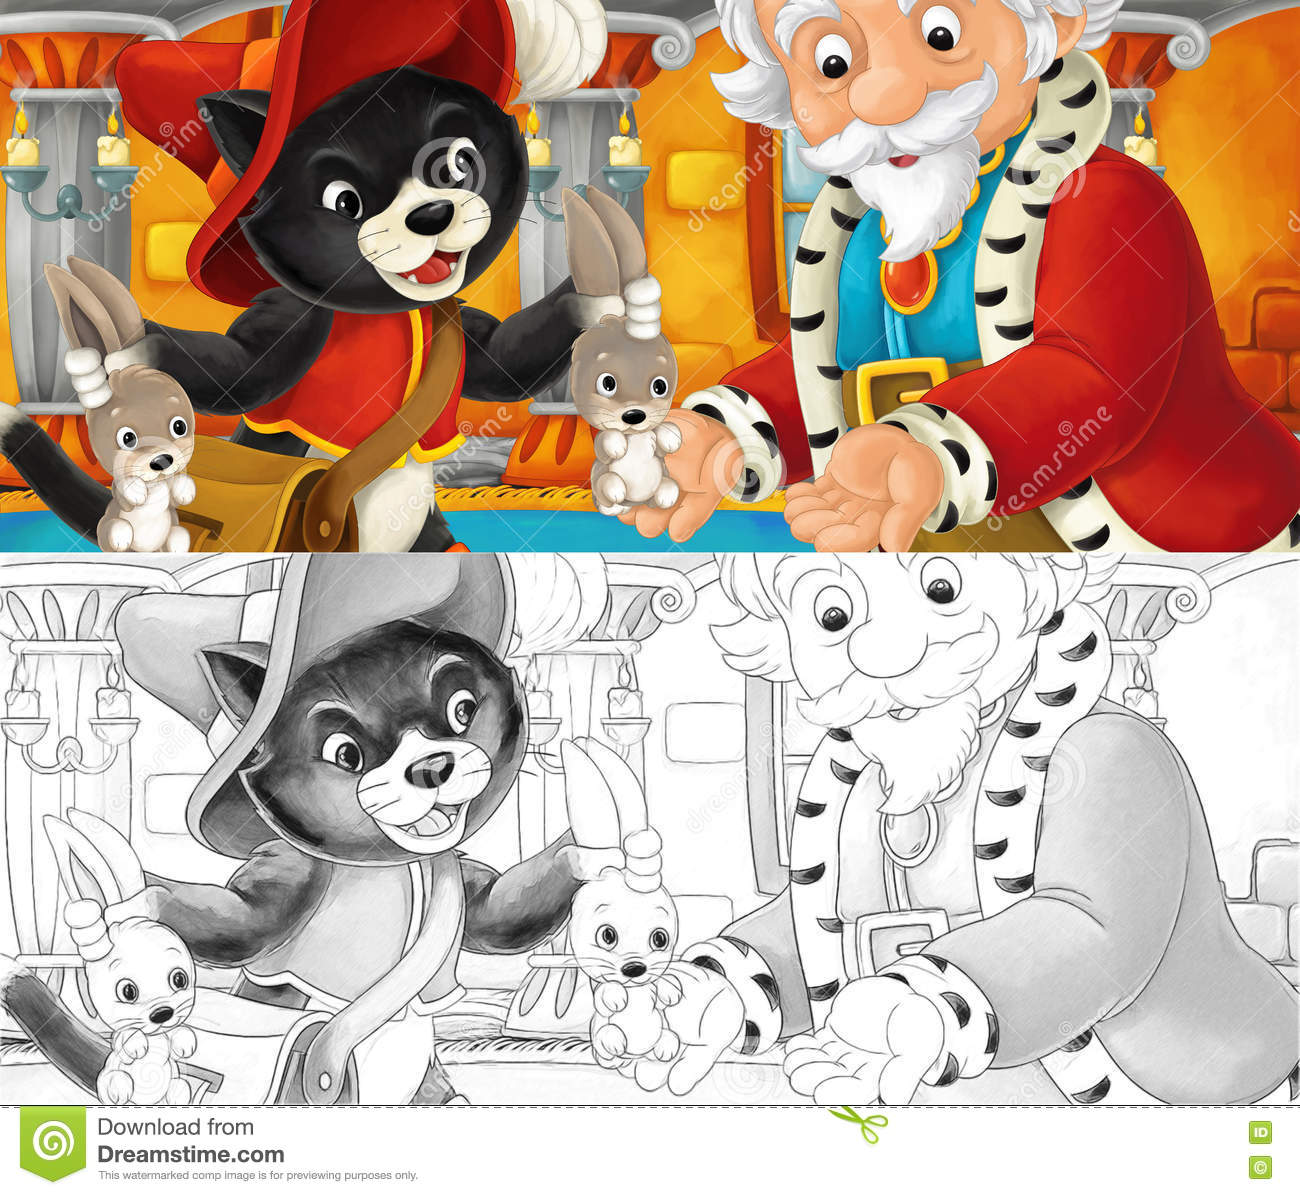 cartoon cat visiting king his castle giving him hares coloring page happy funny traditional illustration children